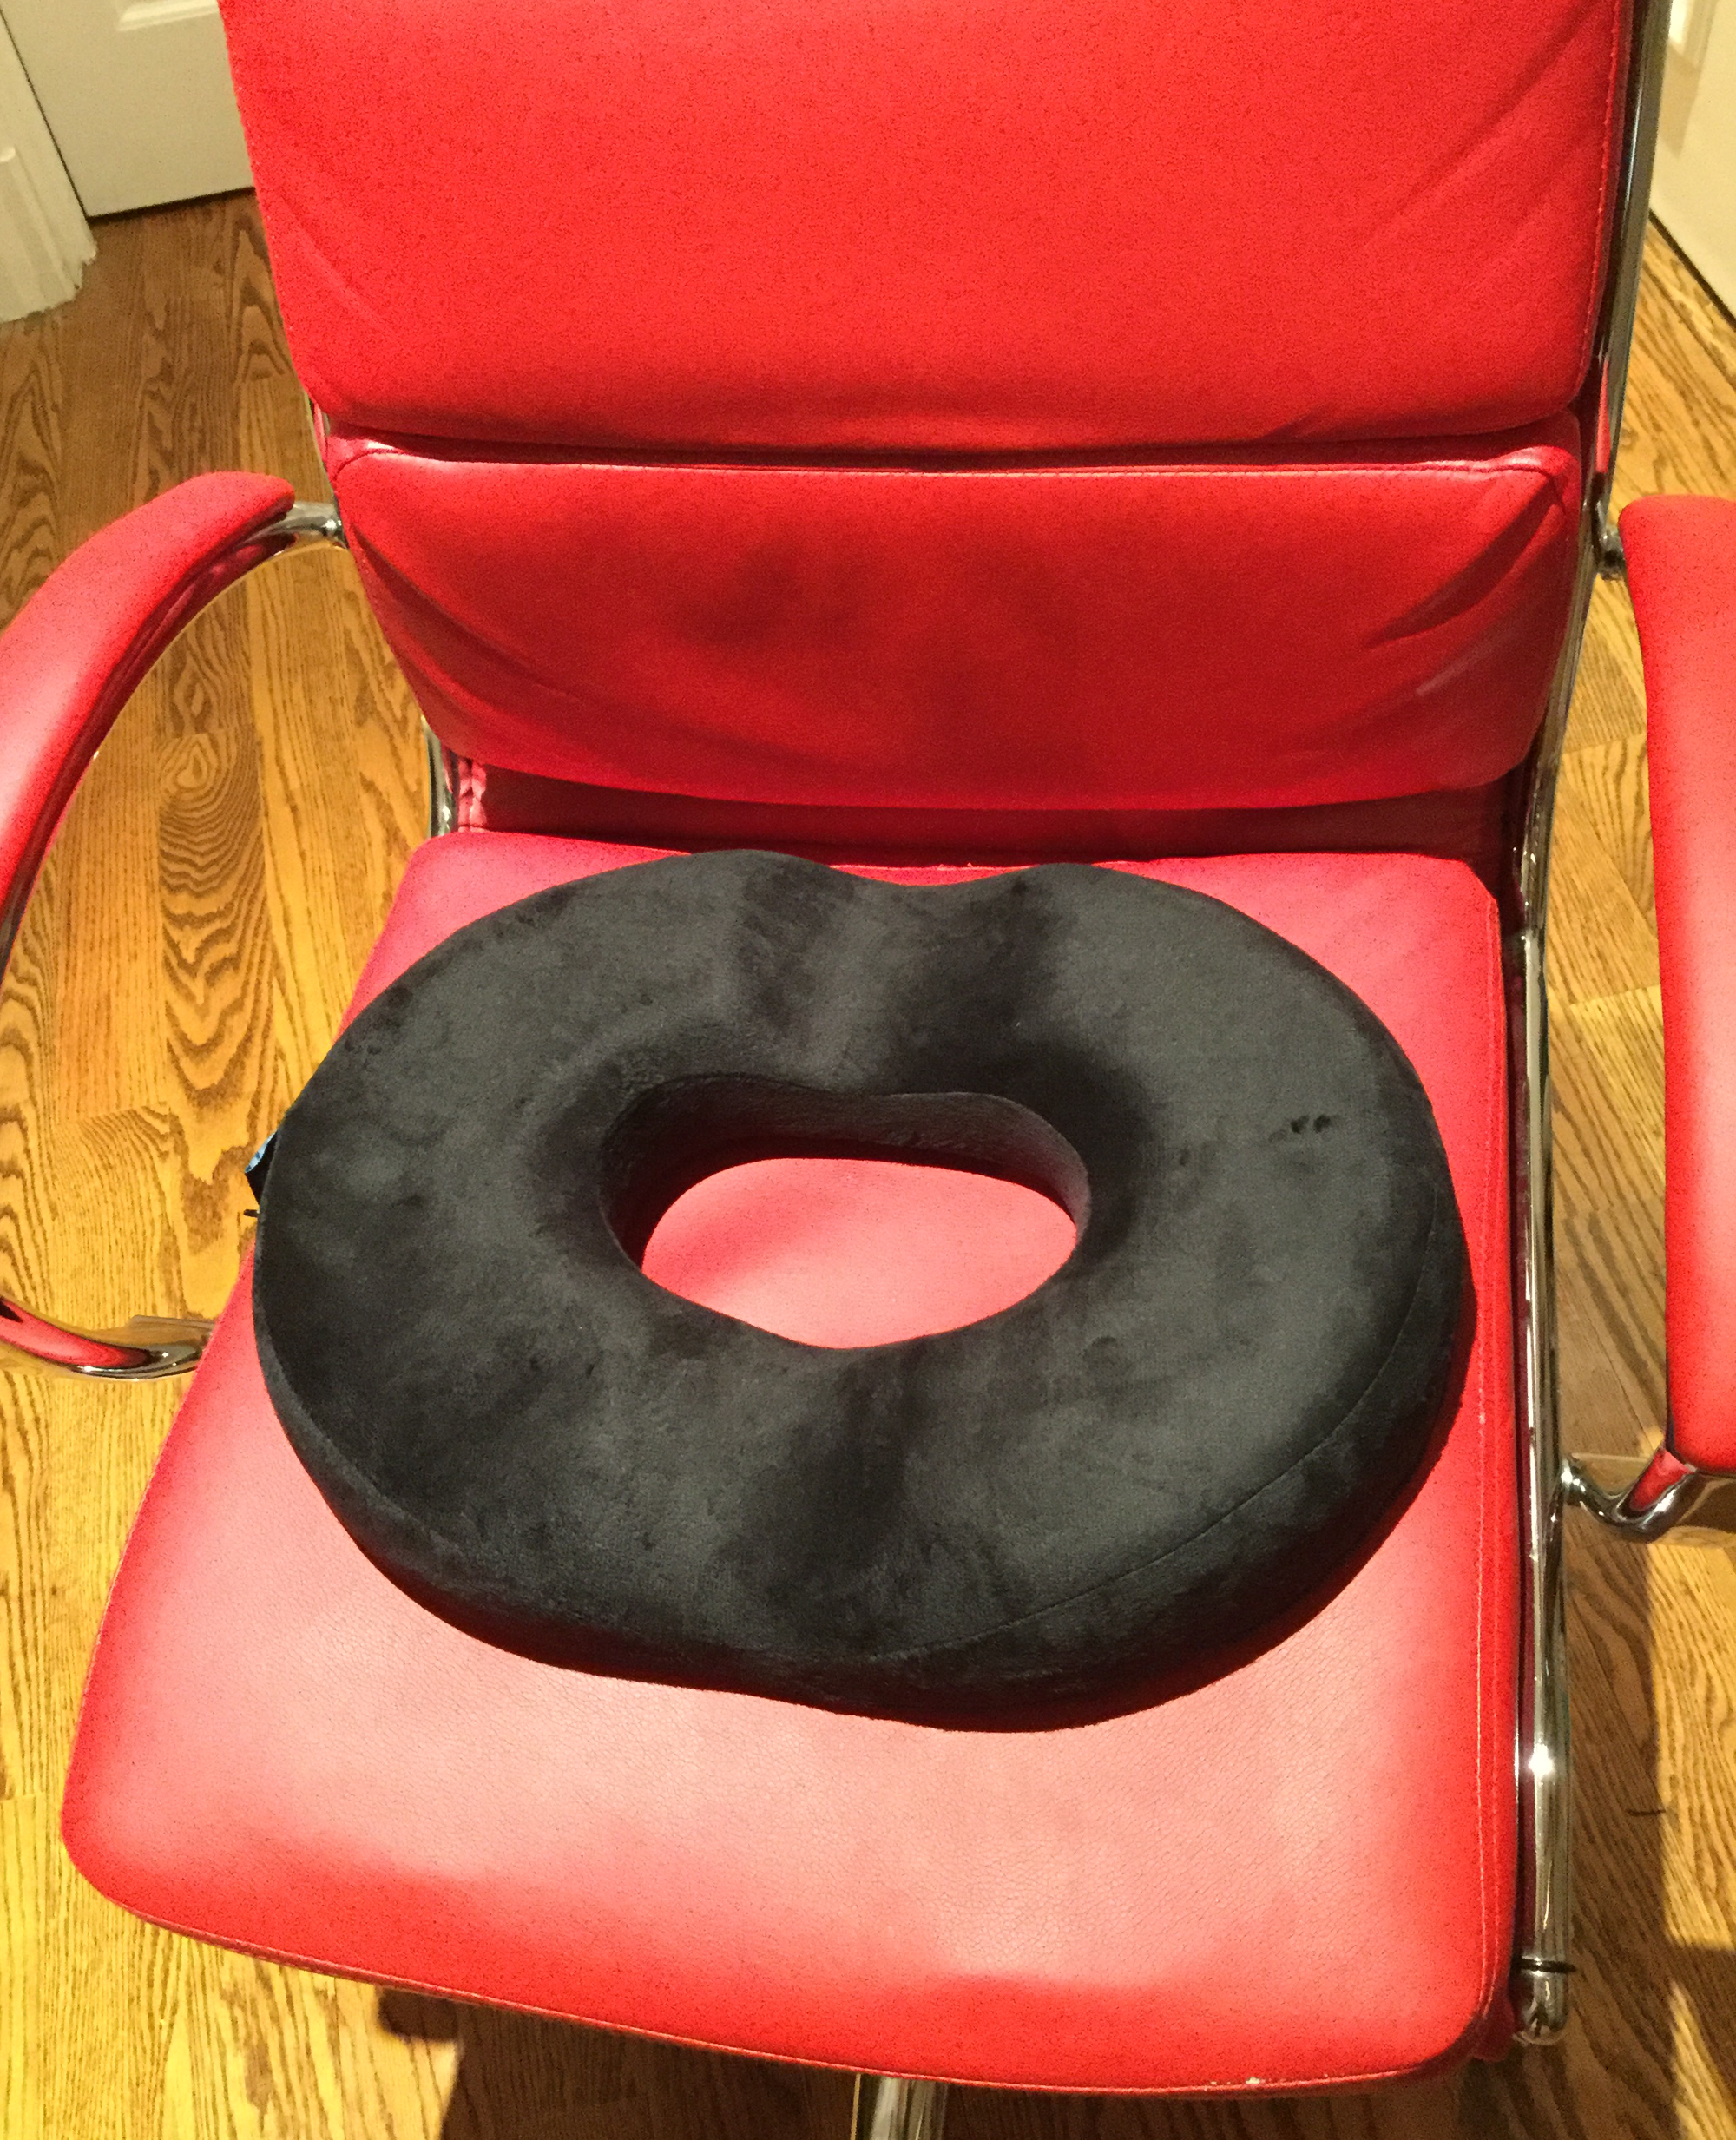 Review: The Orthopedic Donut Cushion By Ergonomic Innovations U2013 Helpful For  Knitters!